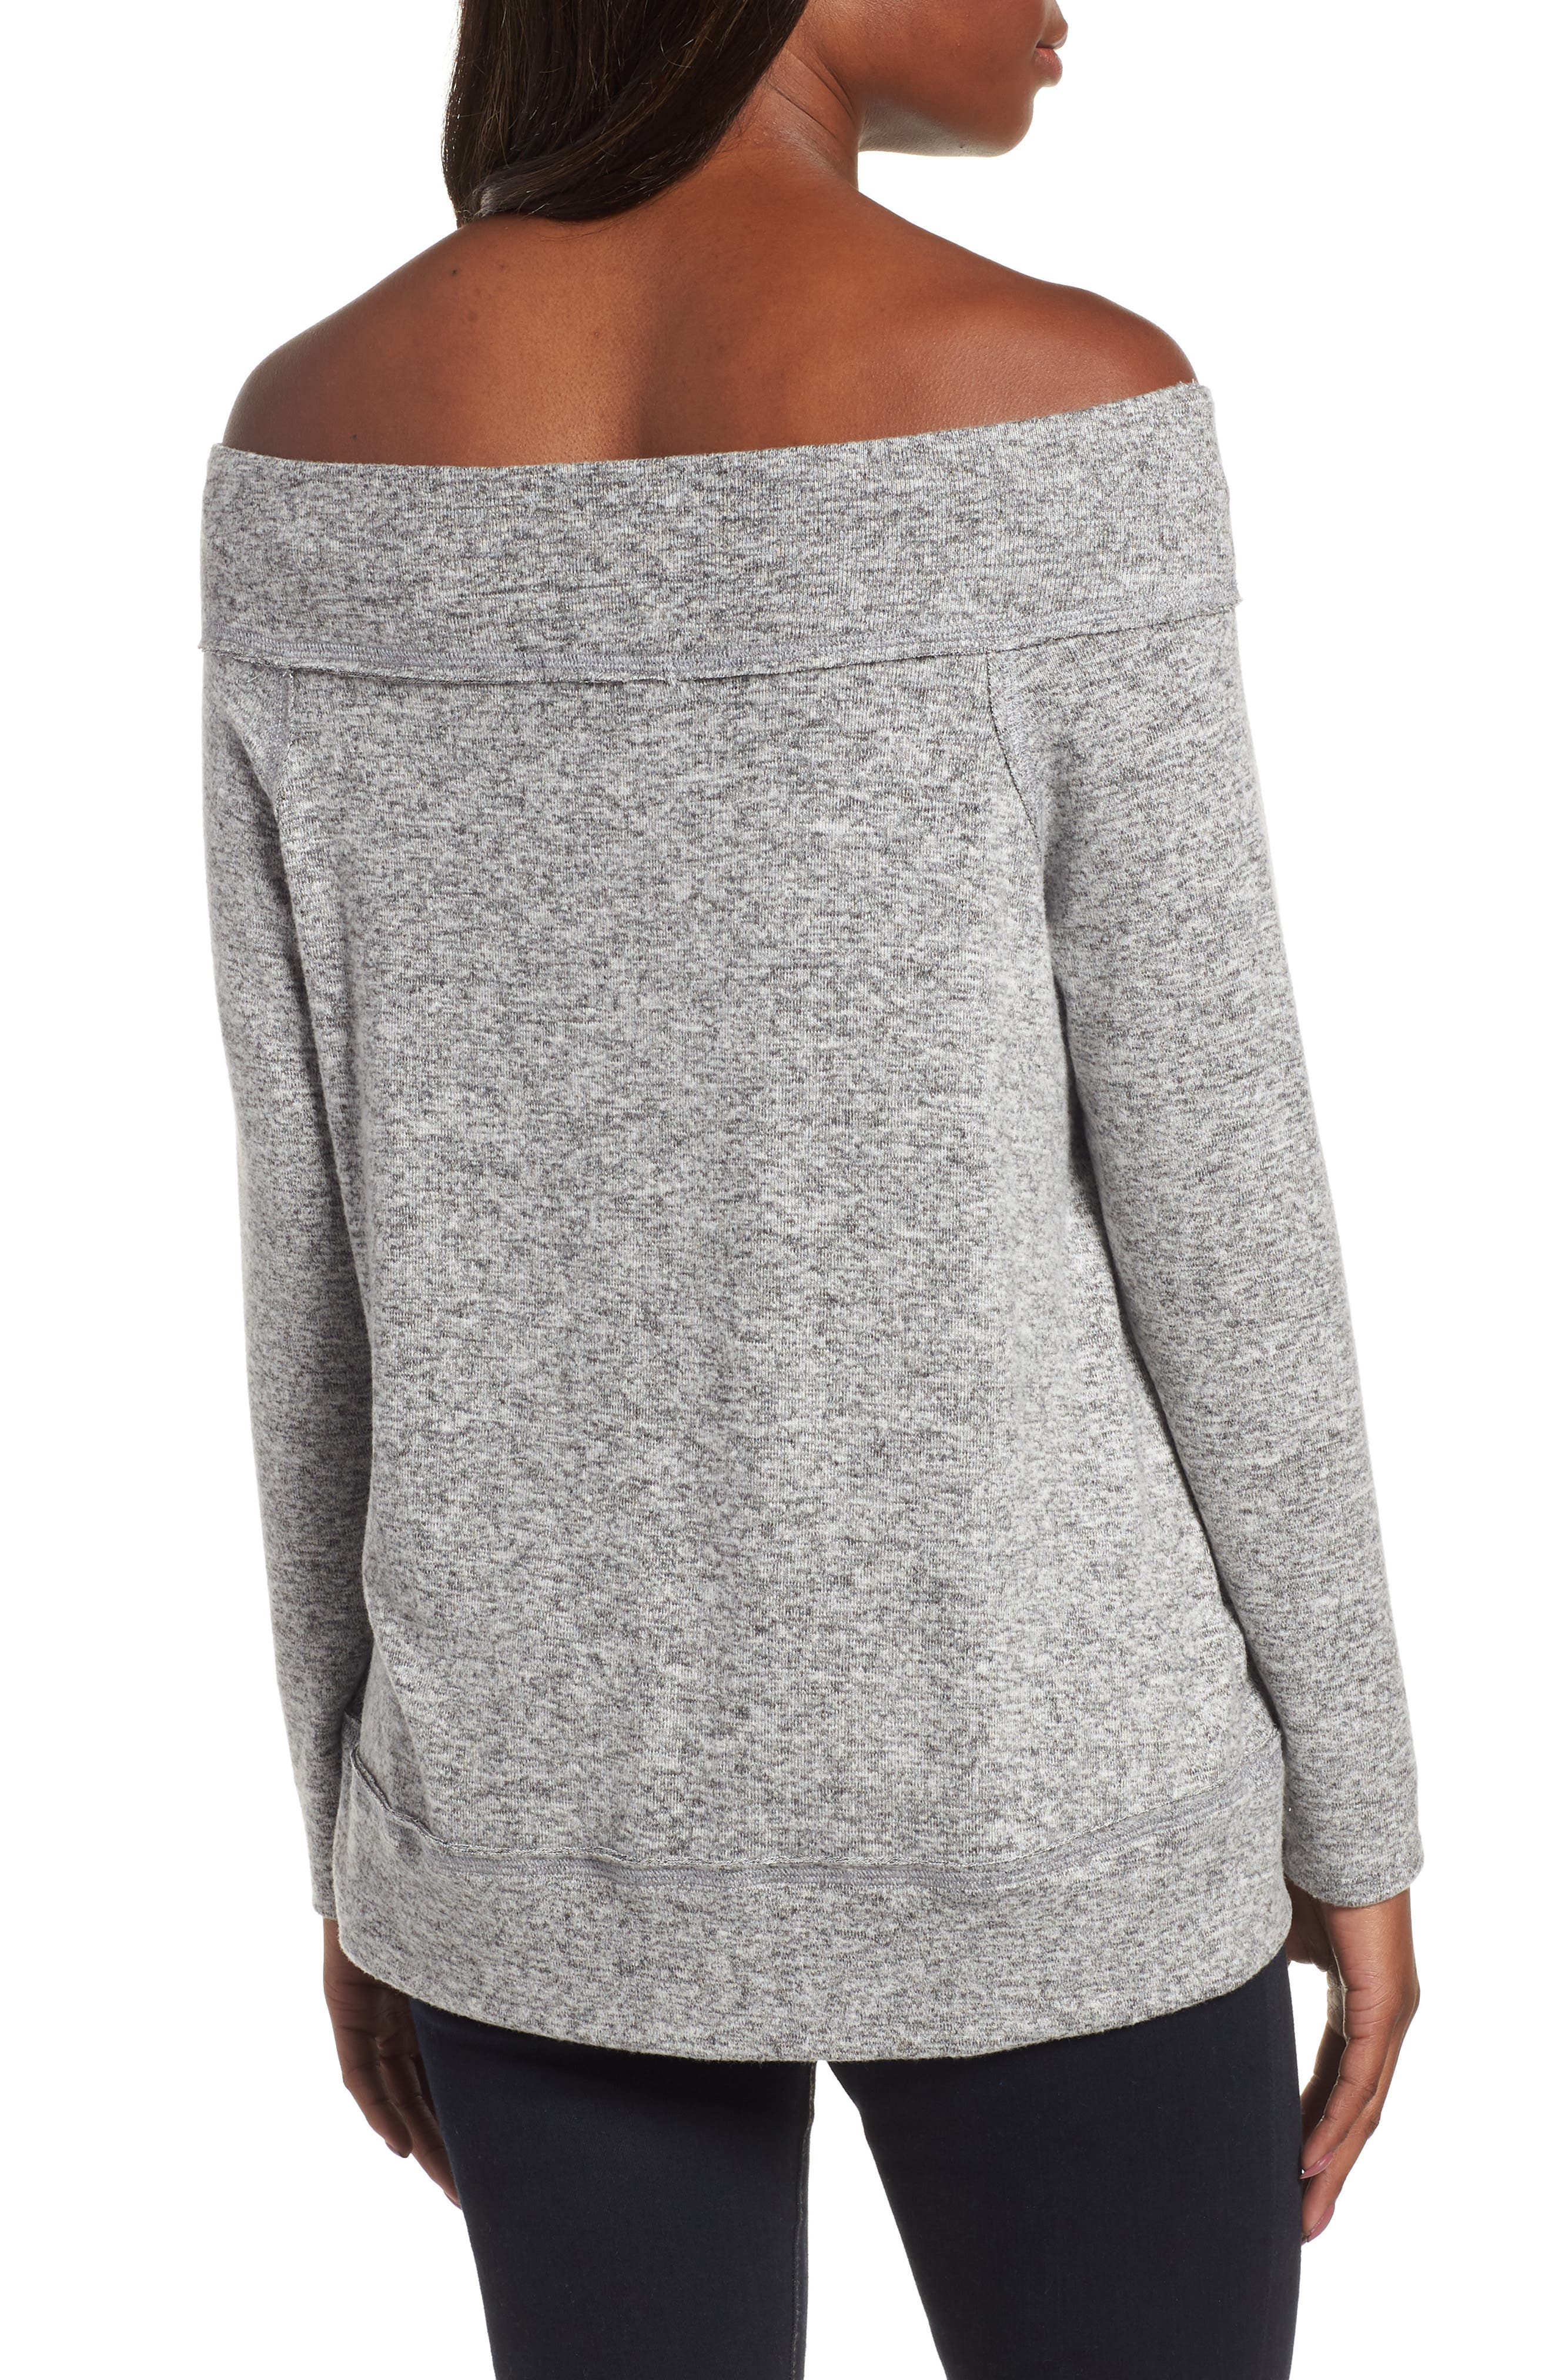 x Living in Yellow Mary Fleece Off the Shoulder Top,                             Alternate thumbnail 2, color,                             HEATHER GREY